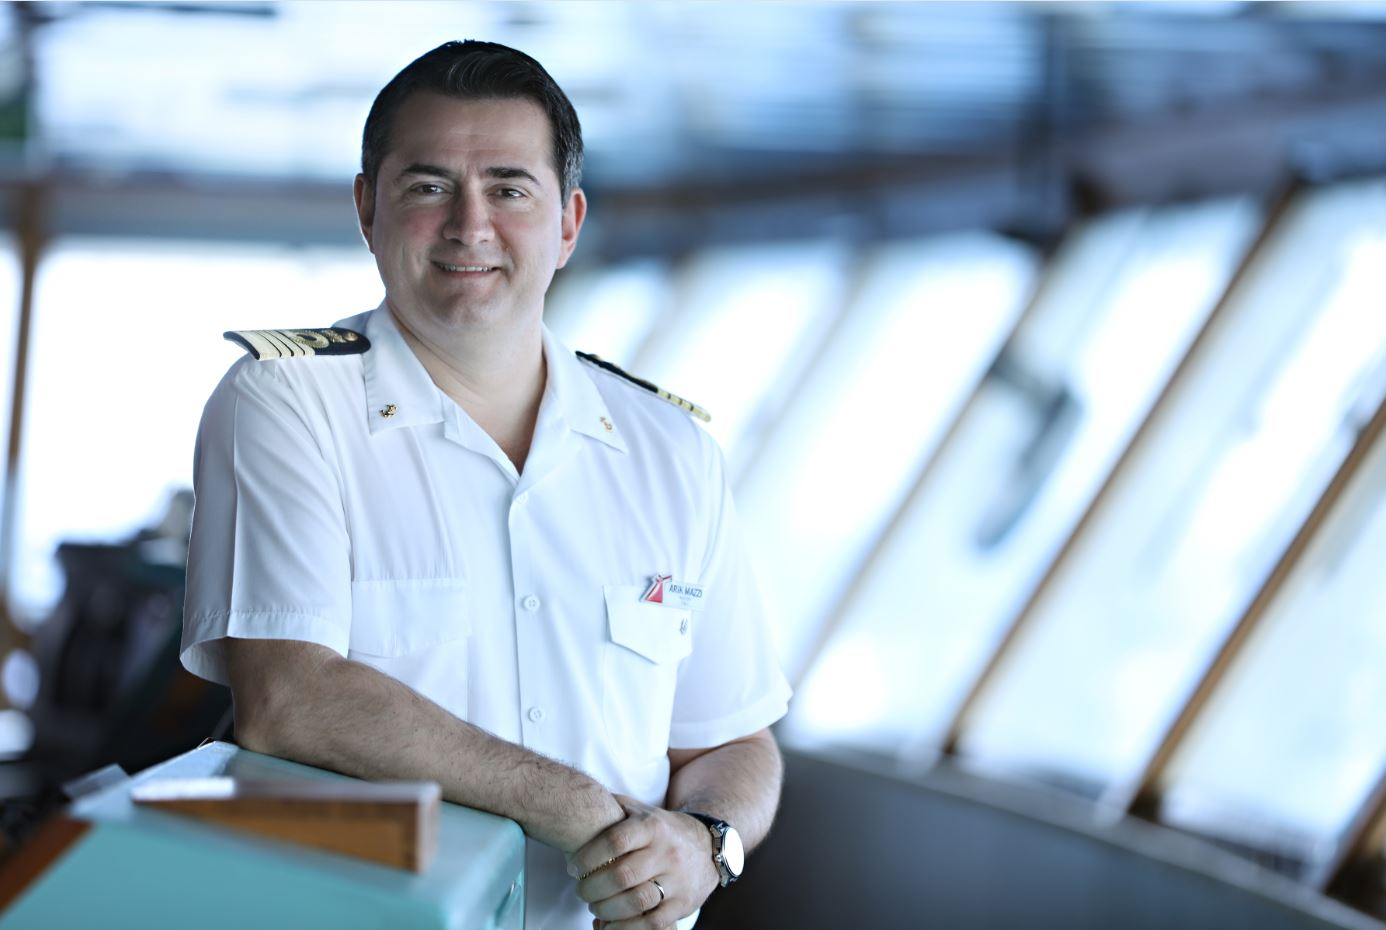 Carnival Cruise Line Announces Officers for Totally Transformed Carnival Radiance